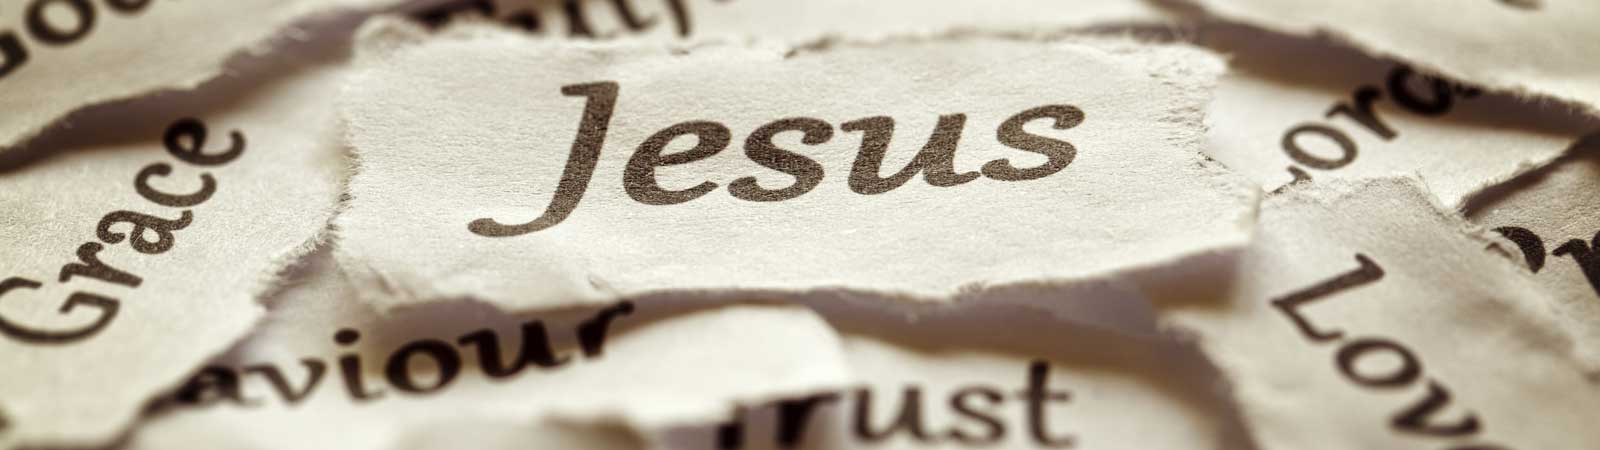 Jesus and Evangelism